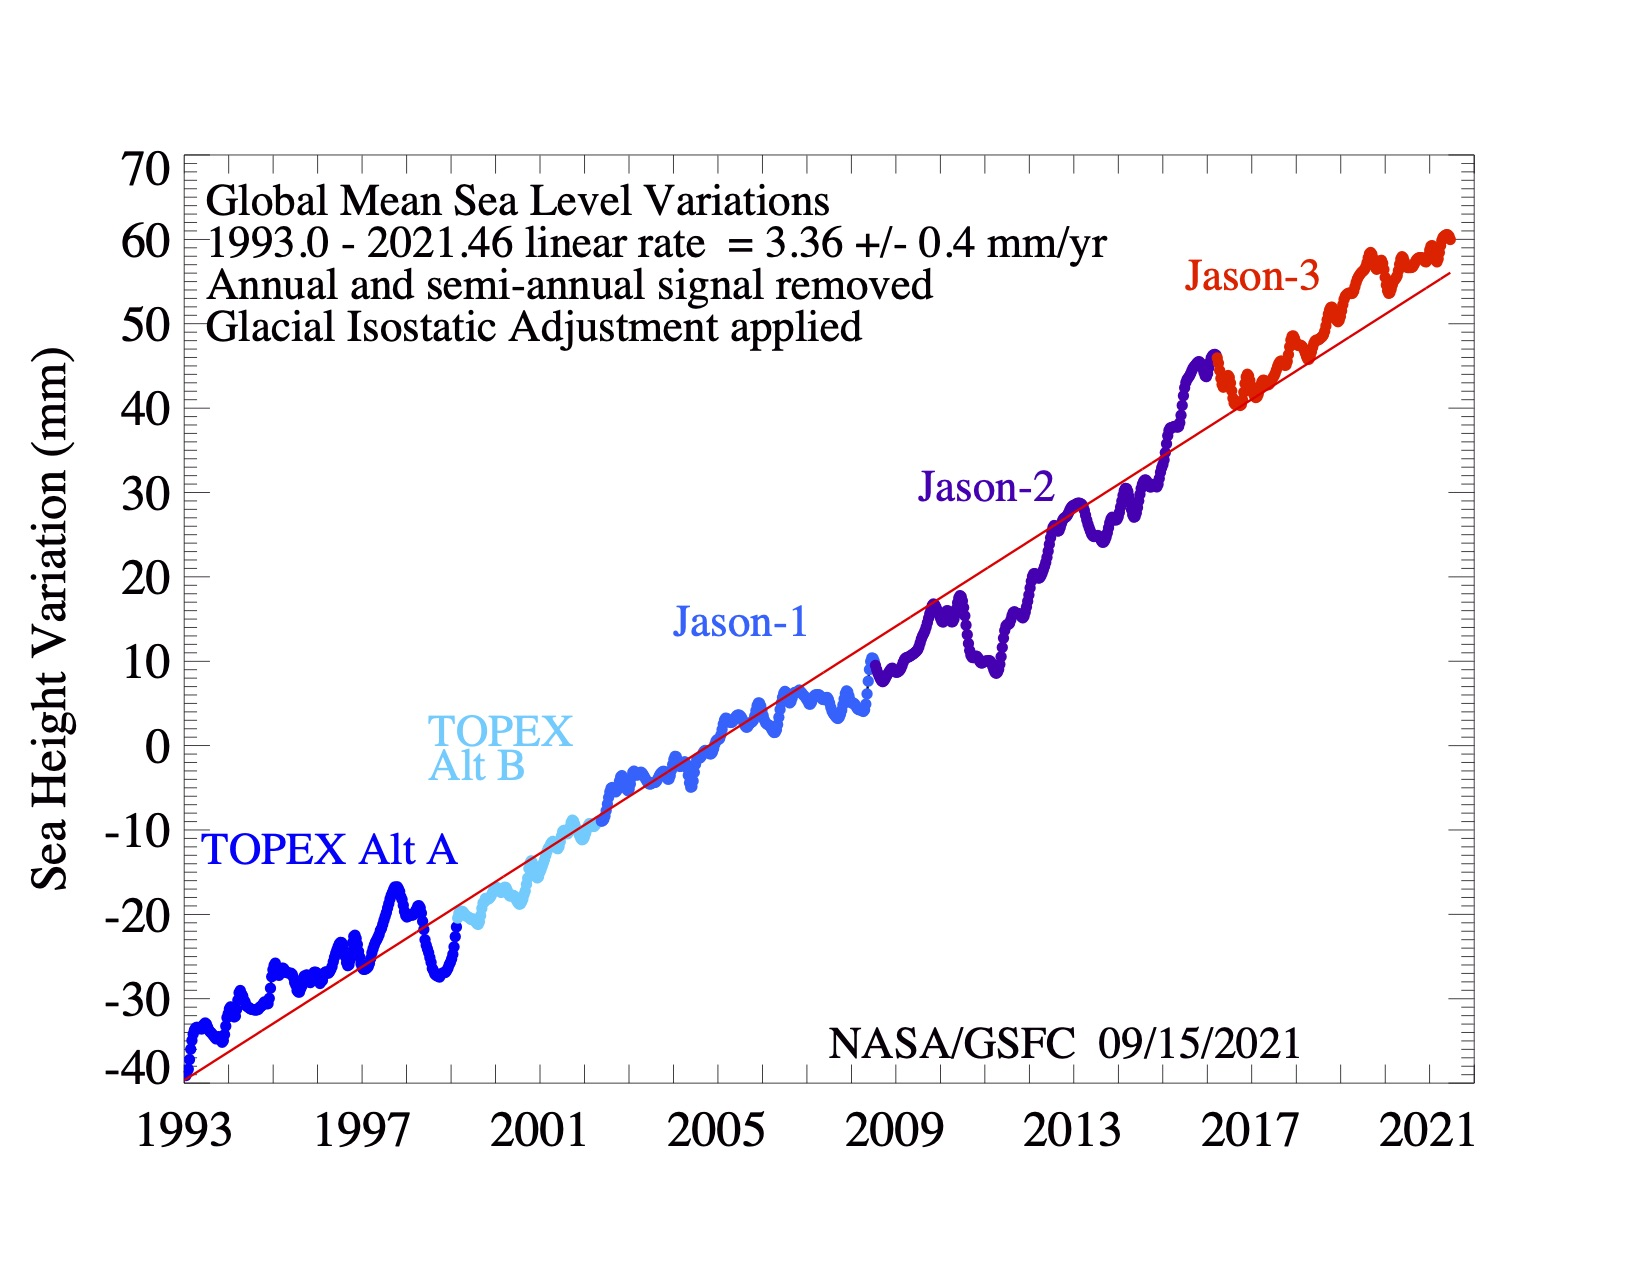 Figure. Global mean sea level variations from TOPEX, Jason-1, 2 and 3 with respect to 20 year TOPEX/Poseidon mean, plotted every 10 days (color-coded dots). The red line is a linear fit of the smoothed variations (60-day Hanning filter) with GIA applied and with annual and semi-annual signals removed, showing a global mean sea level rise estimate provided on the plot.